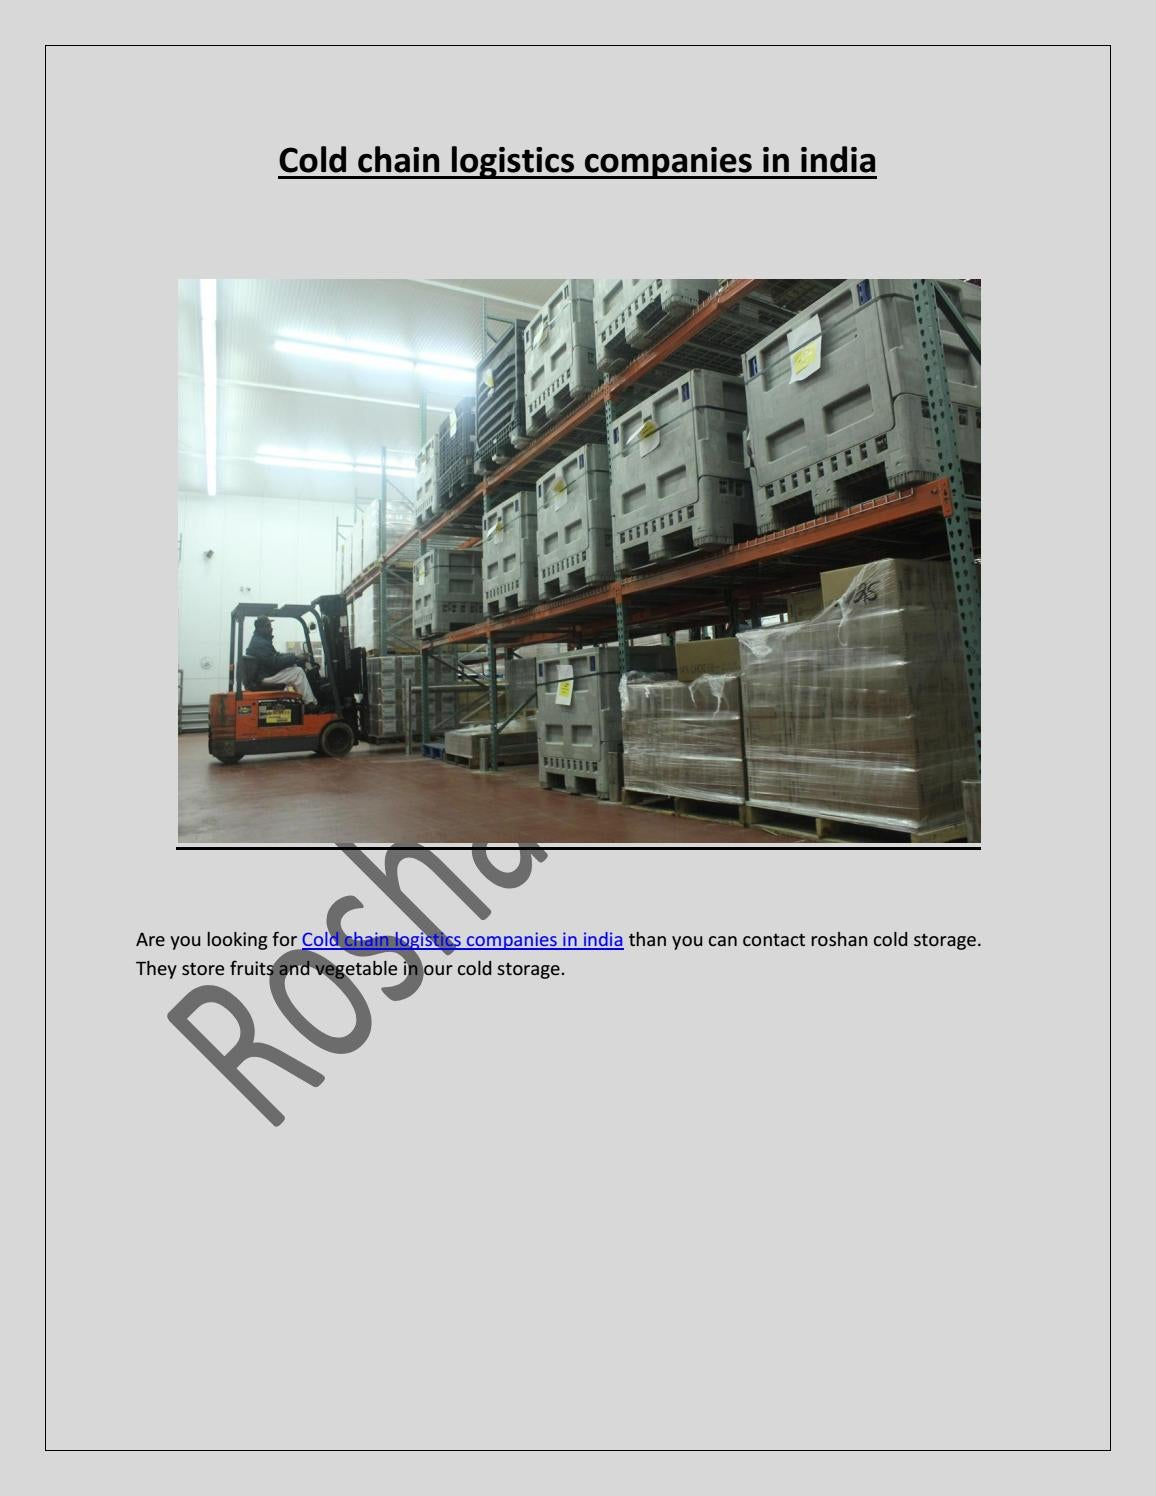 Cold chain logistics companies in india by Roshan